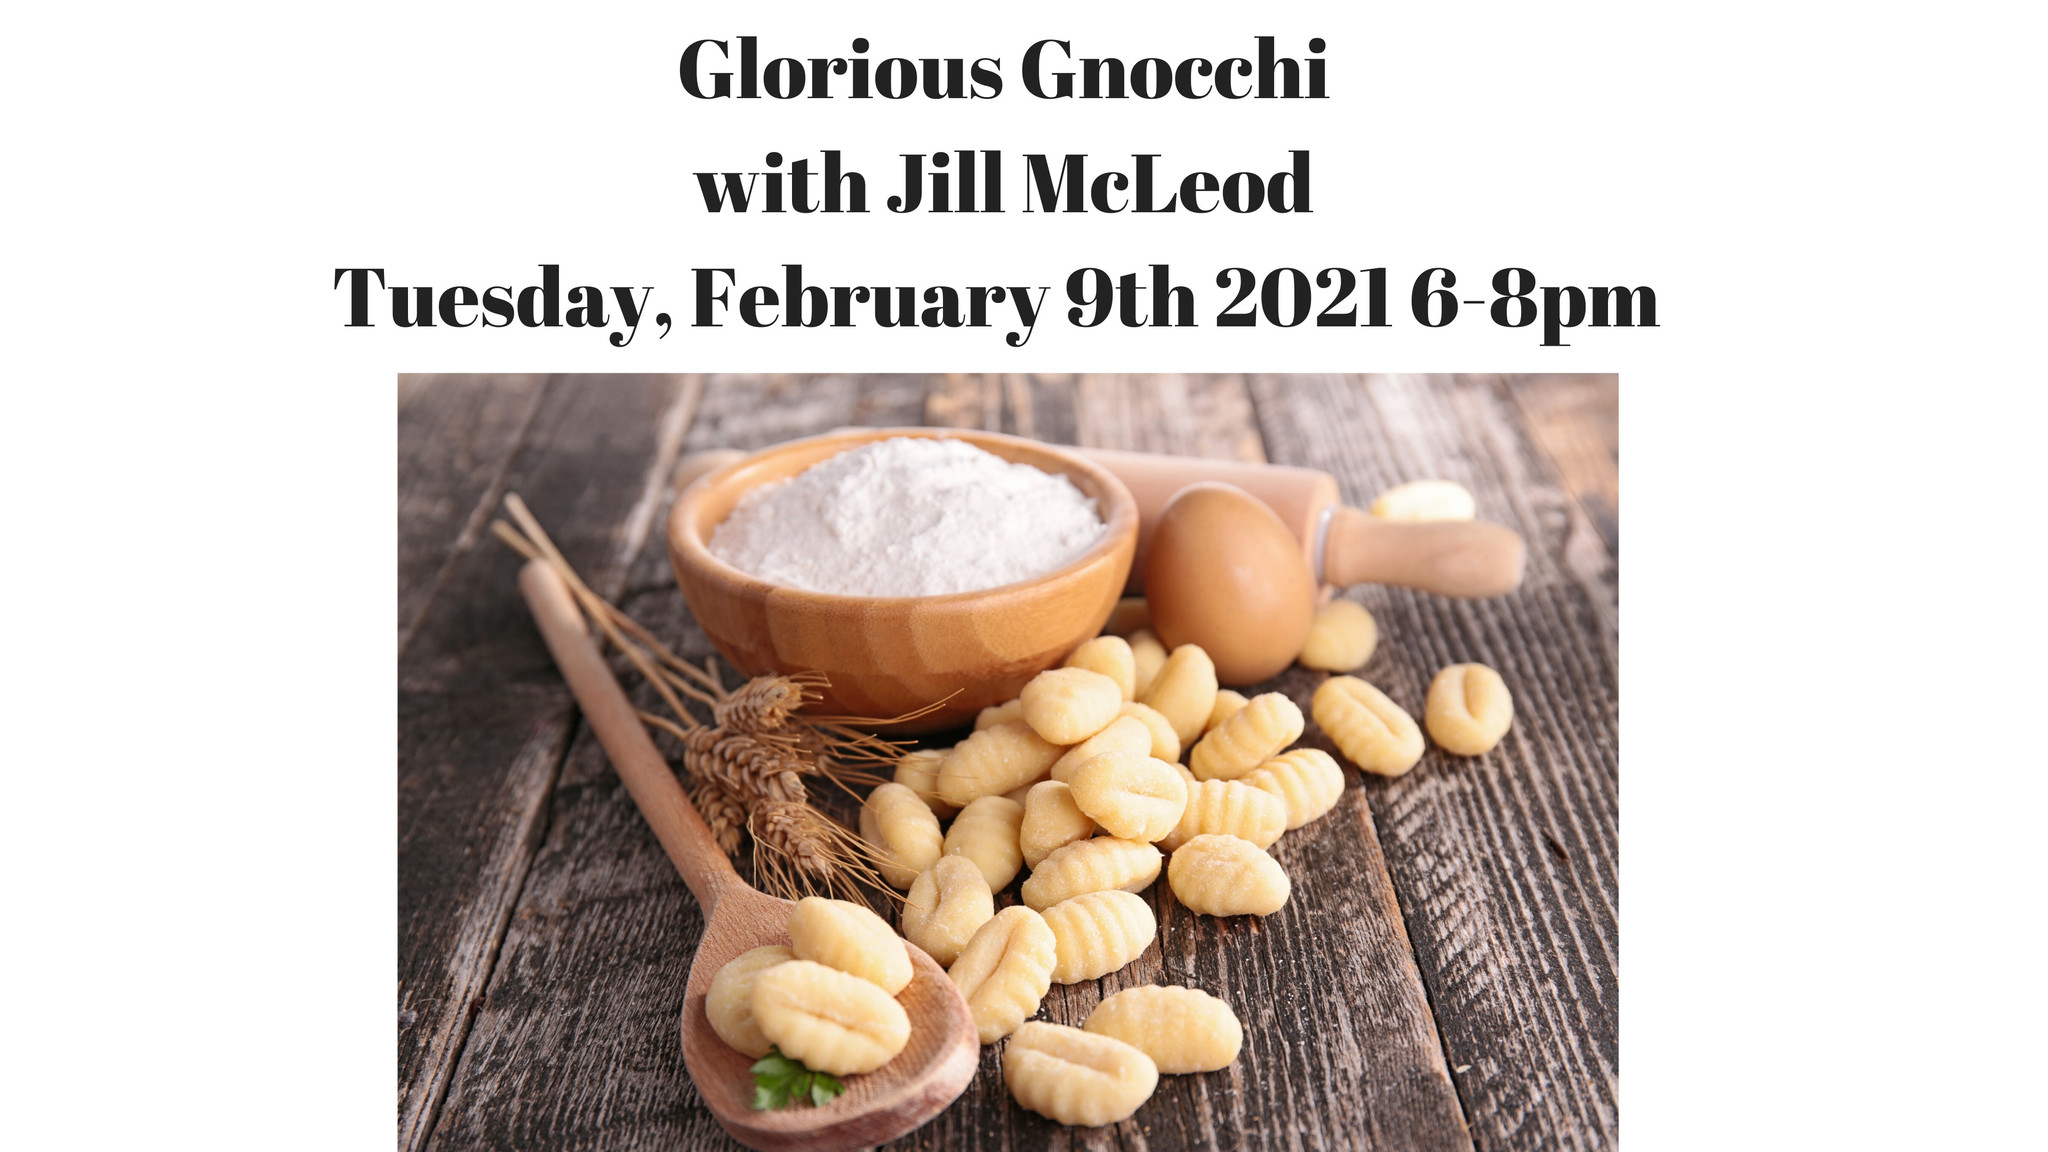 Glorious Gnocchi Cooking Class 2/9/21